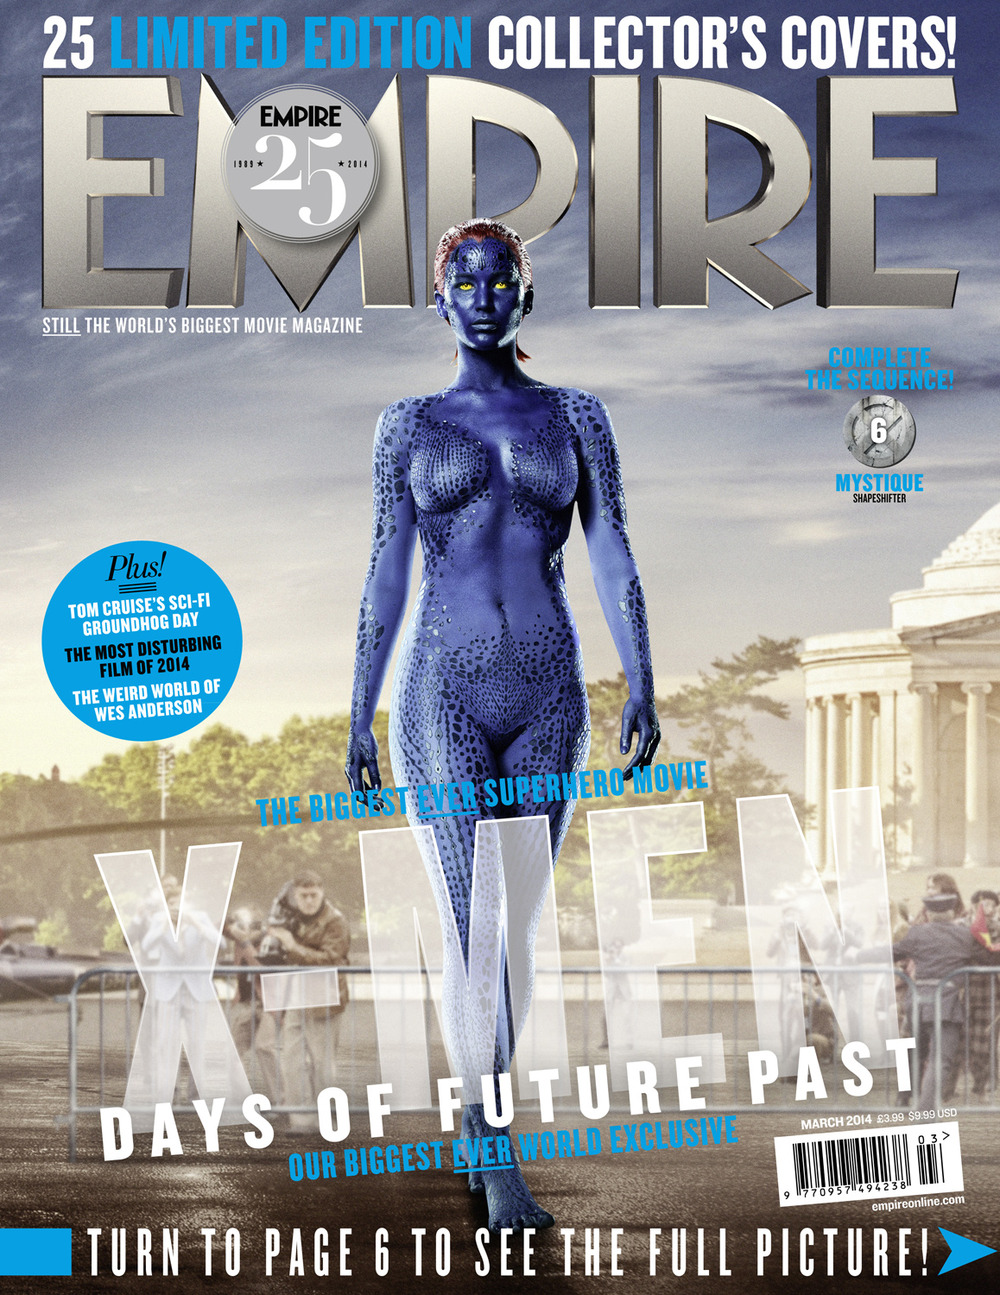 Jennifer Lawrence Nude as X-Men's Mystique on Empire Magazine Cover (PHOTO)